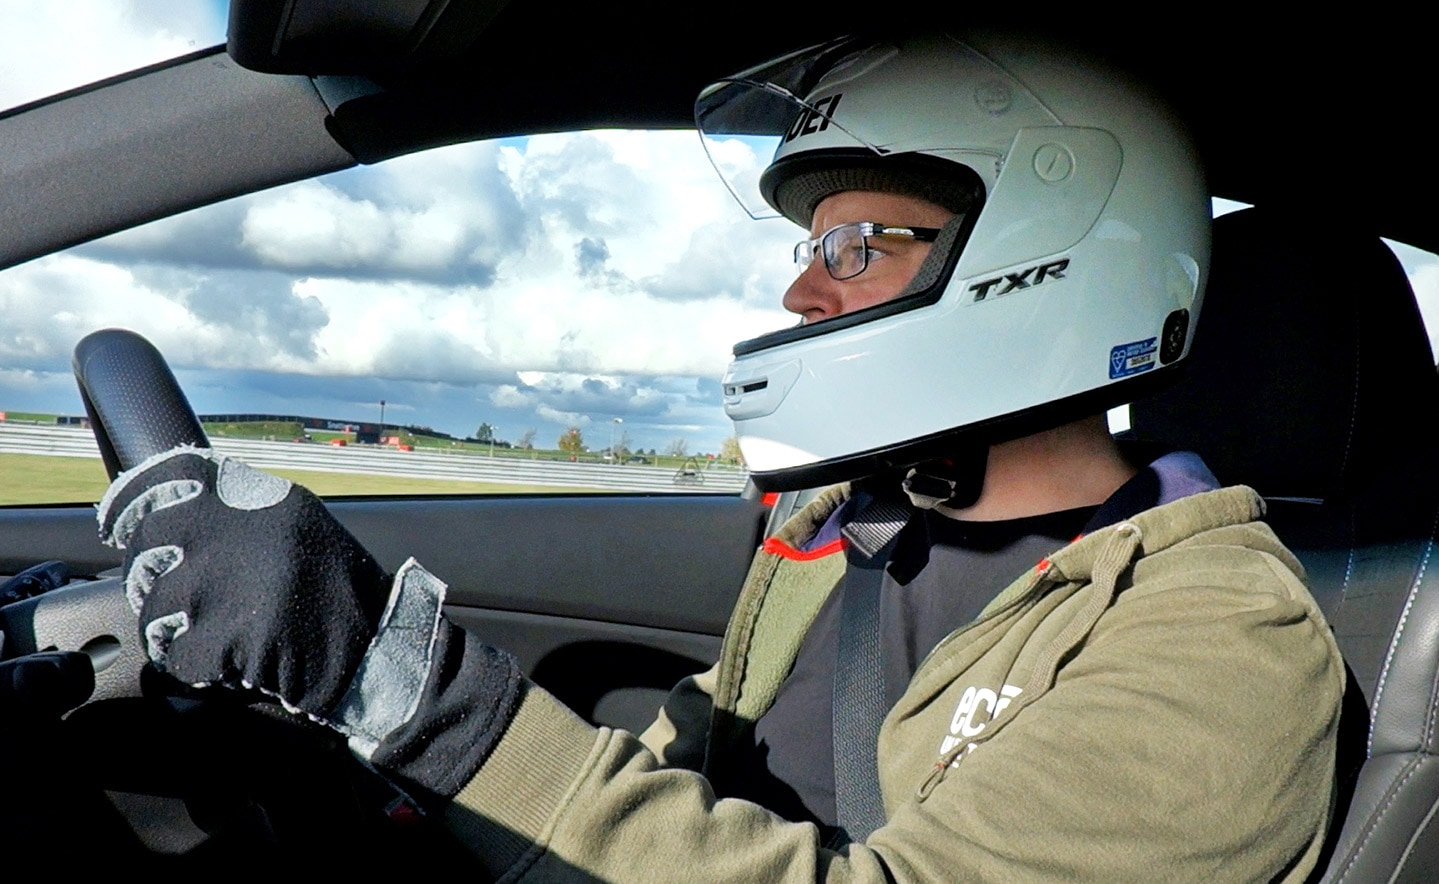 On track with the UK's N-Thusiasts